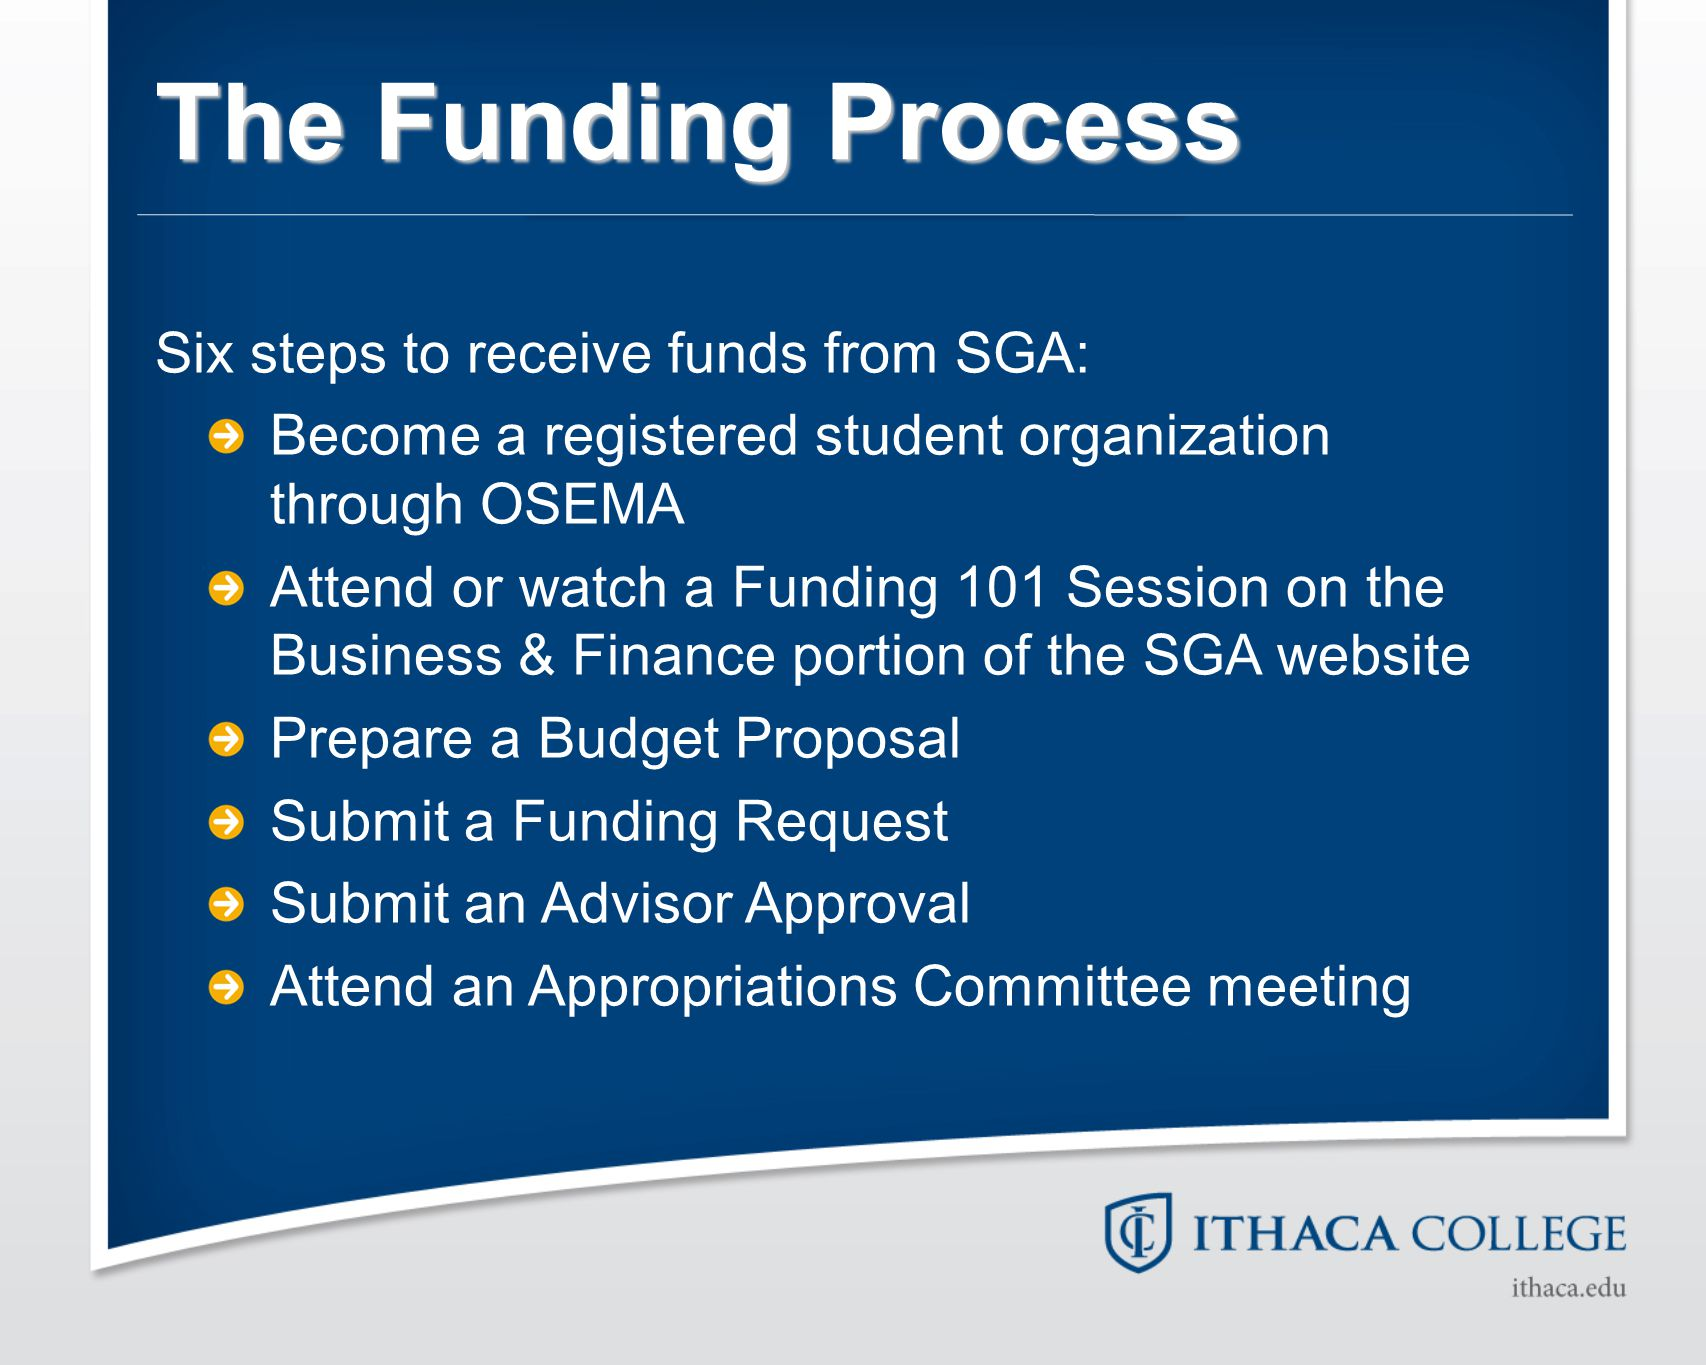 The Funding Process Six steps to receive funds from SGA: Become a registered student organization through OSEMA Attend or watch a Funding 101 Session